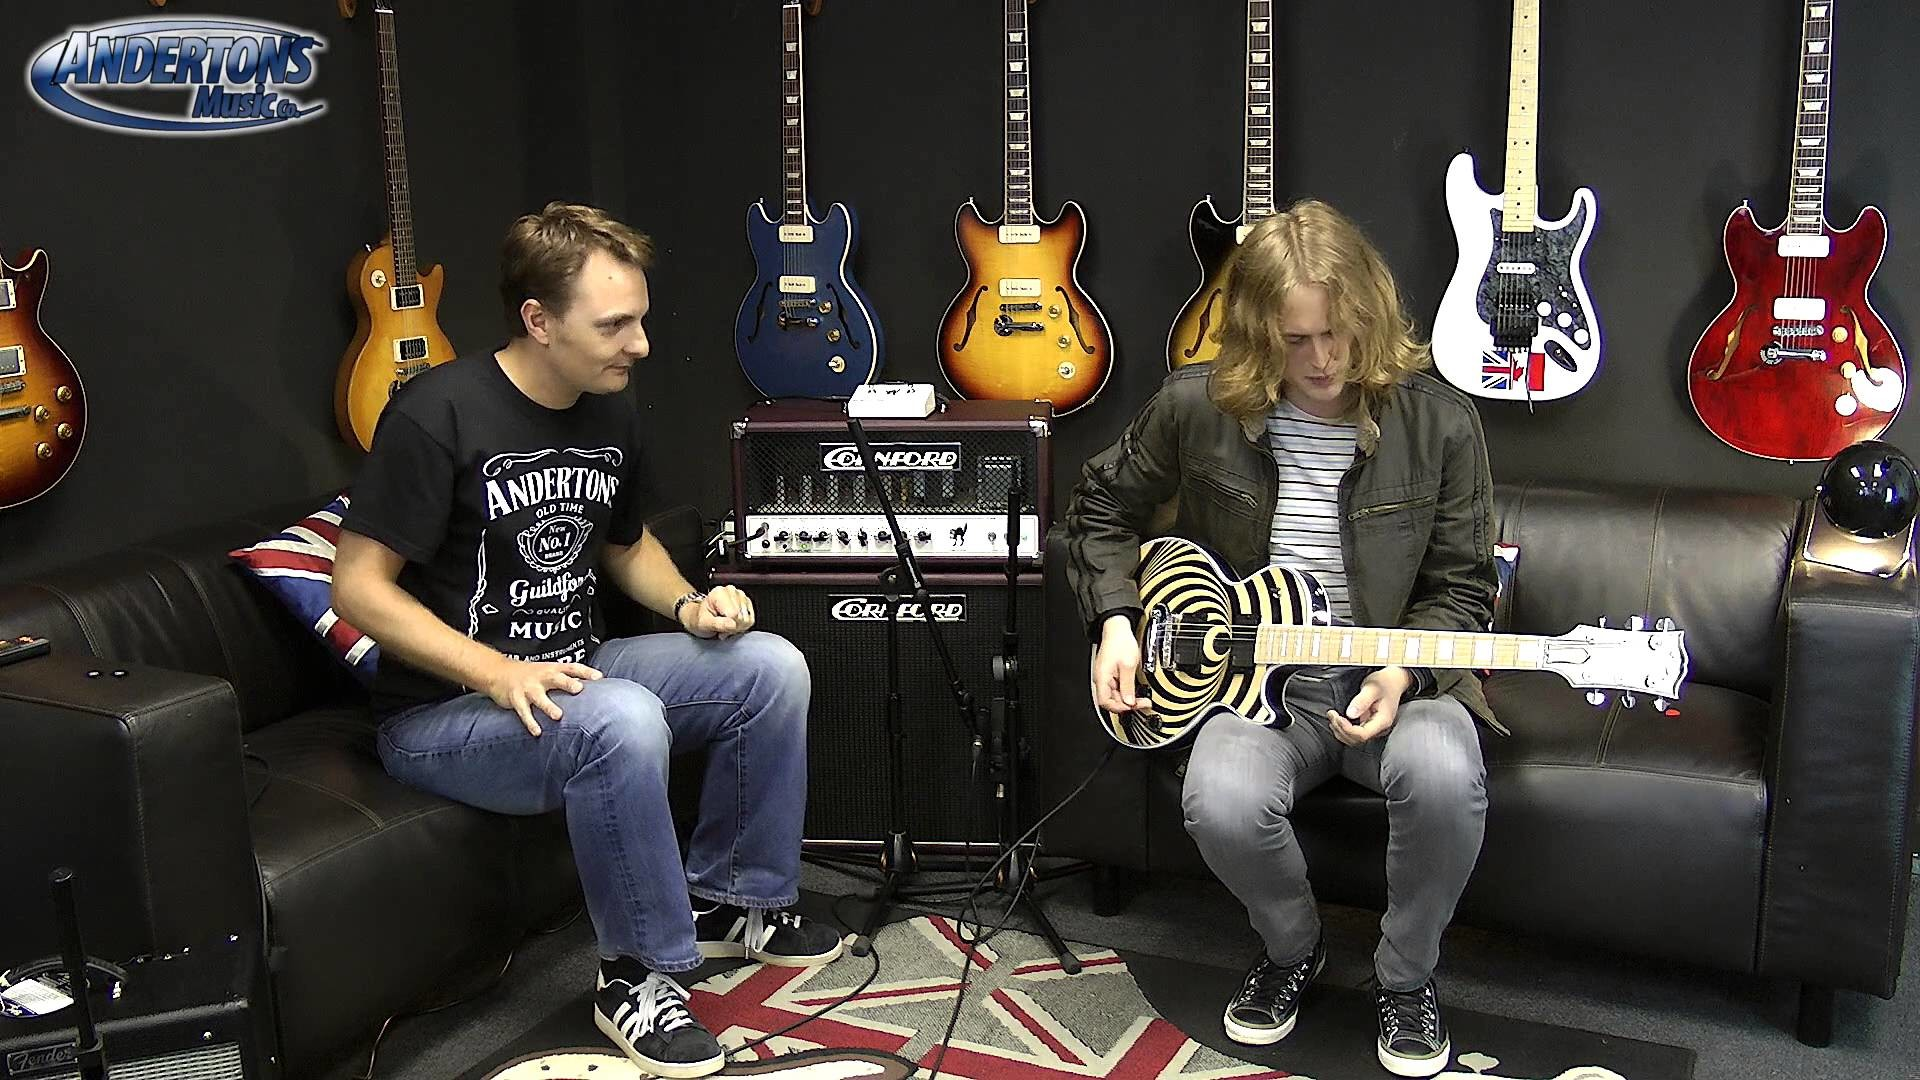 1920x1080 Gibson Les Paul Zakk Wylde demo Featuring Sam Coulson